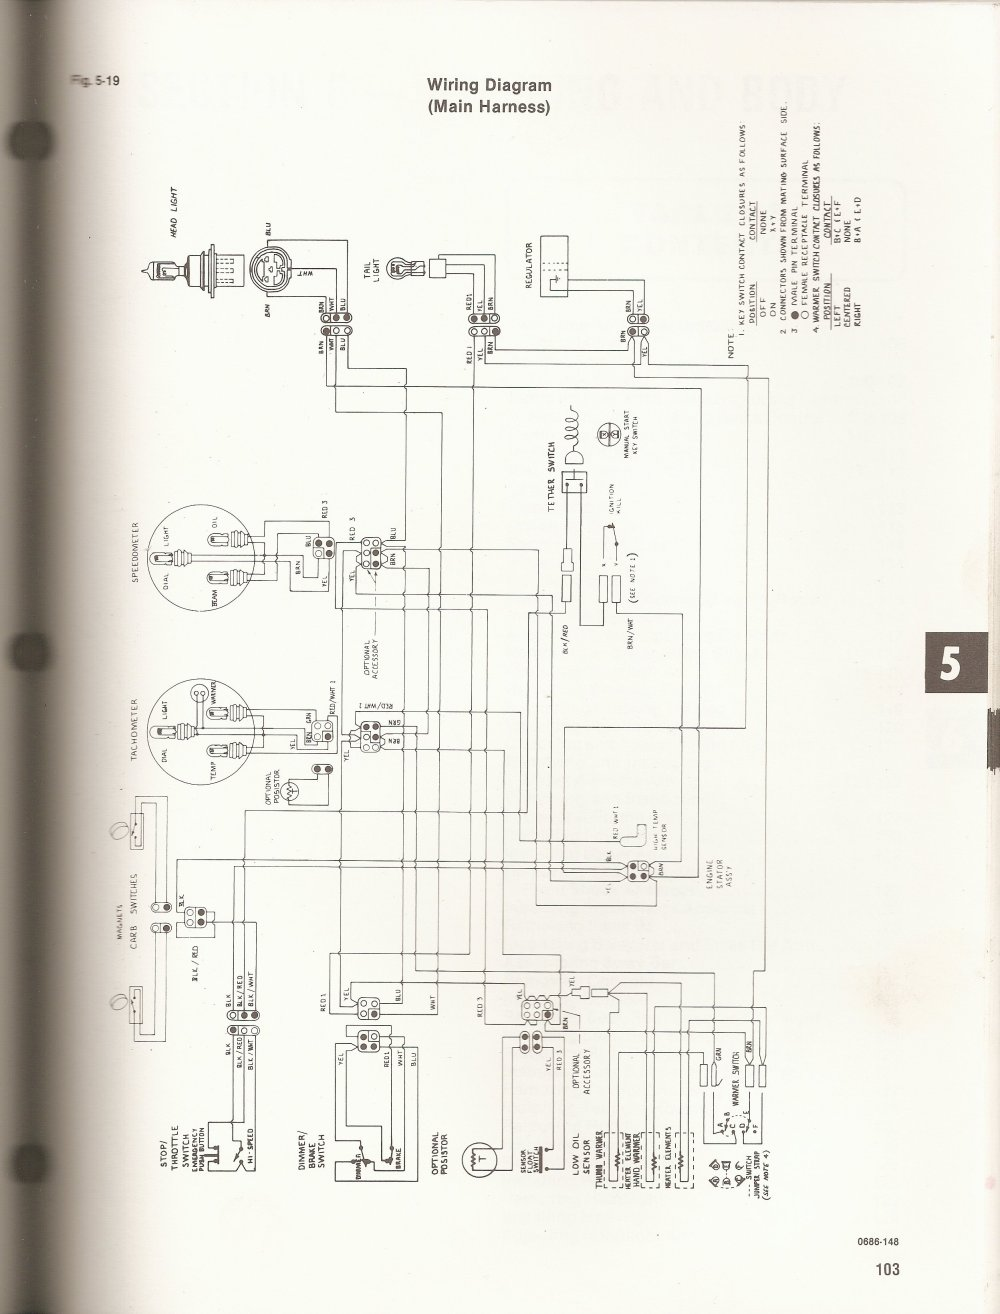 medium resolution of wildcat wiring diagram wiring diagram wildcat x wiring diagram 1992 wildcat wiring diagram arcticchat com arctic